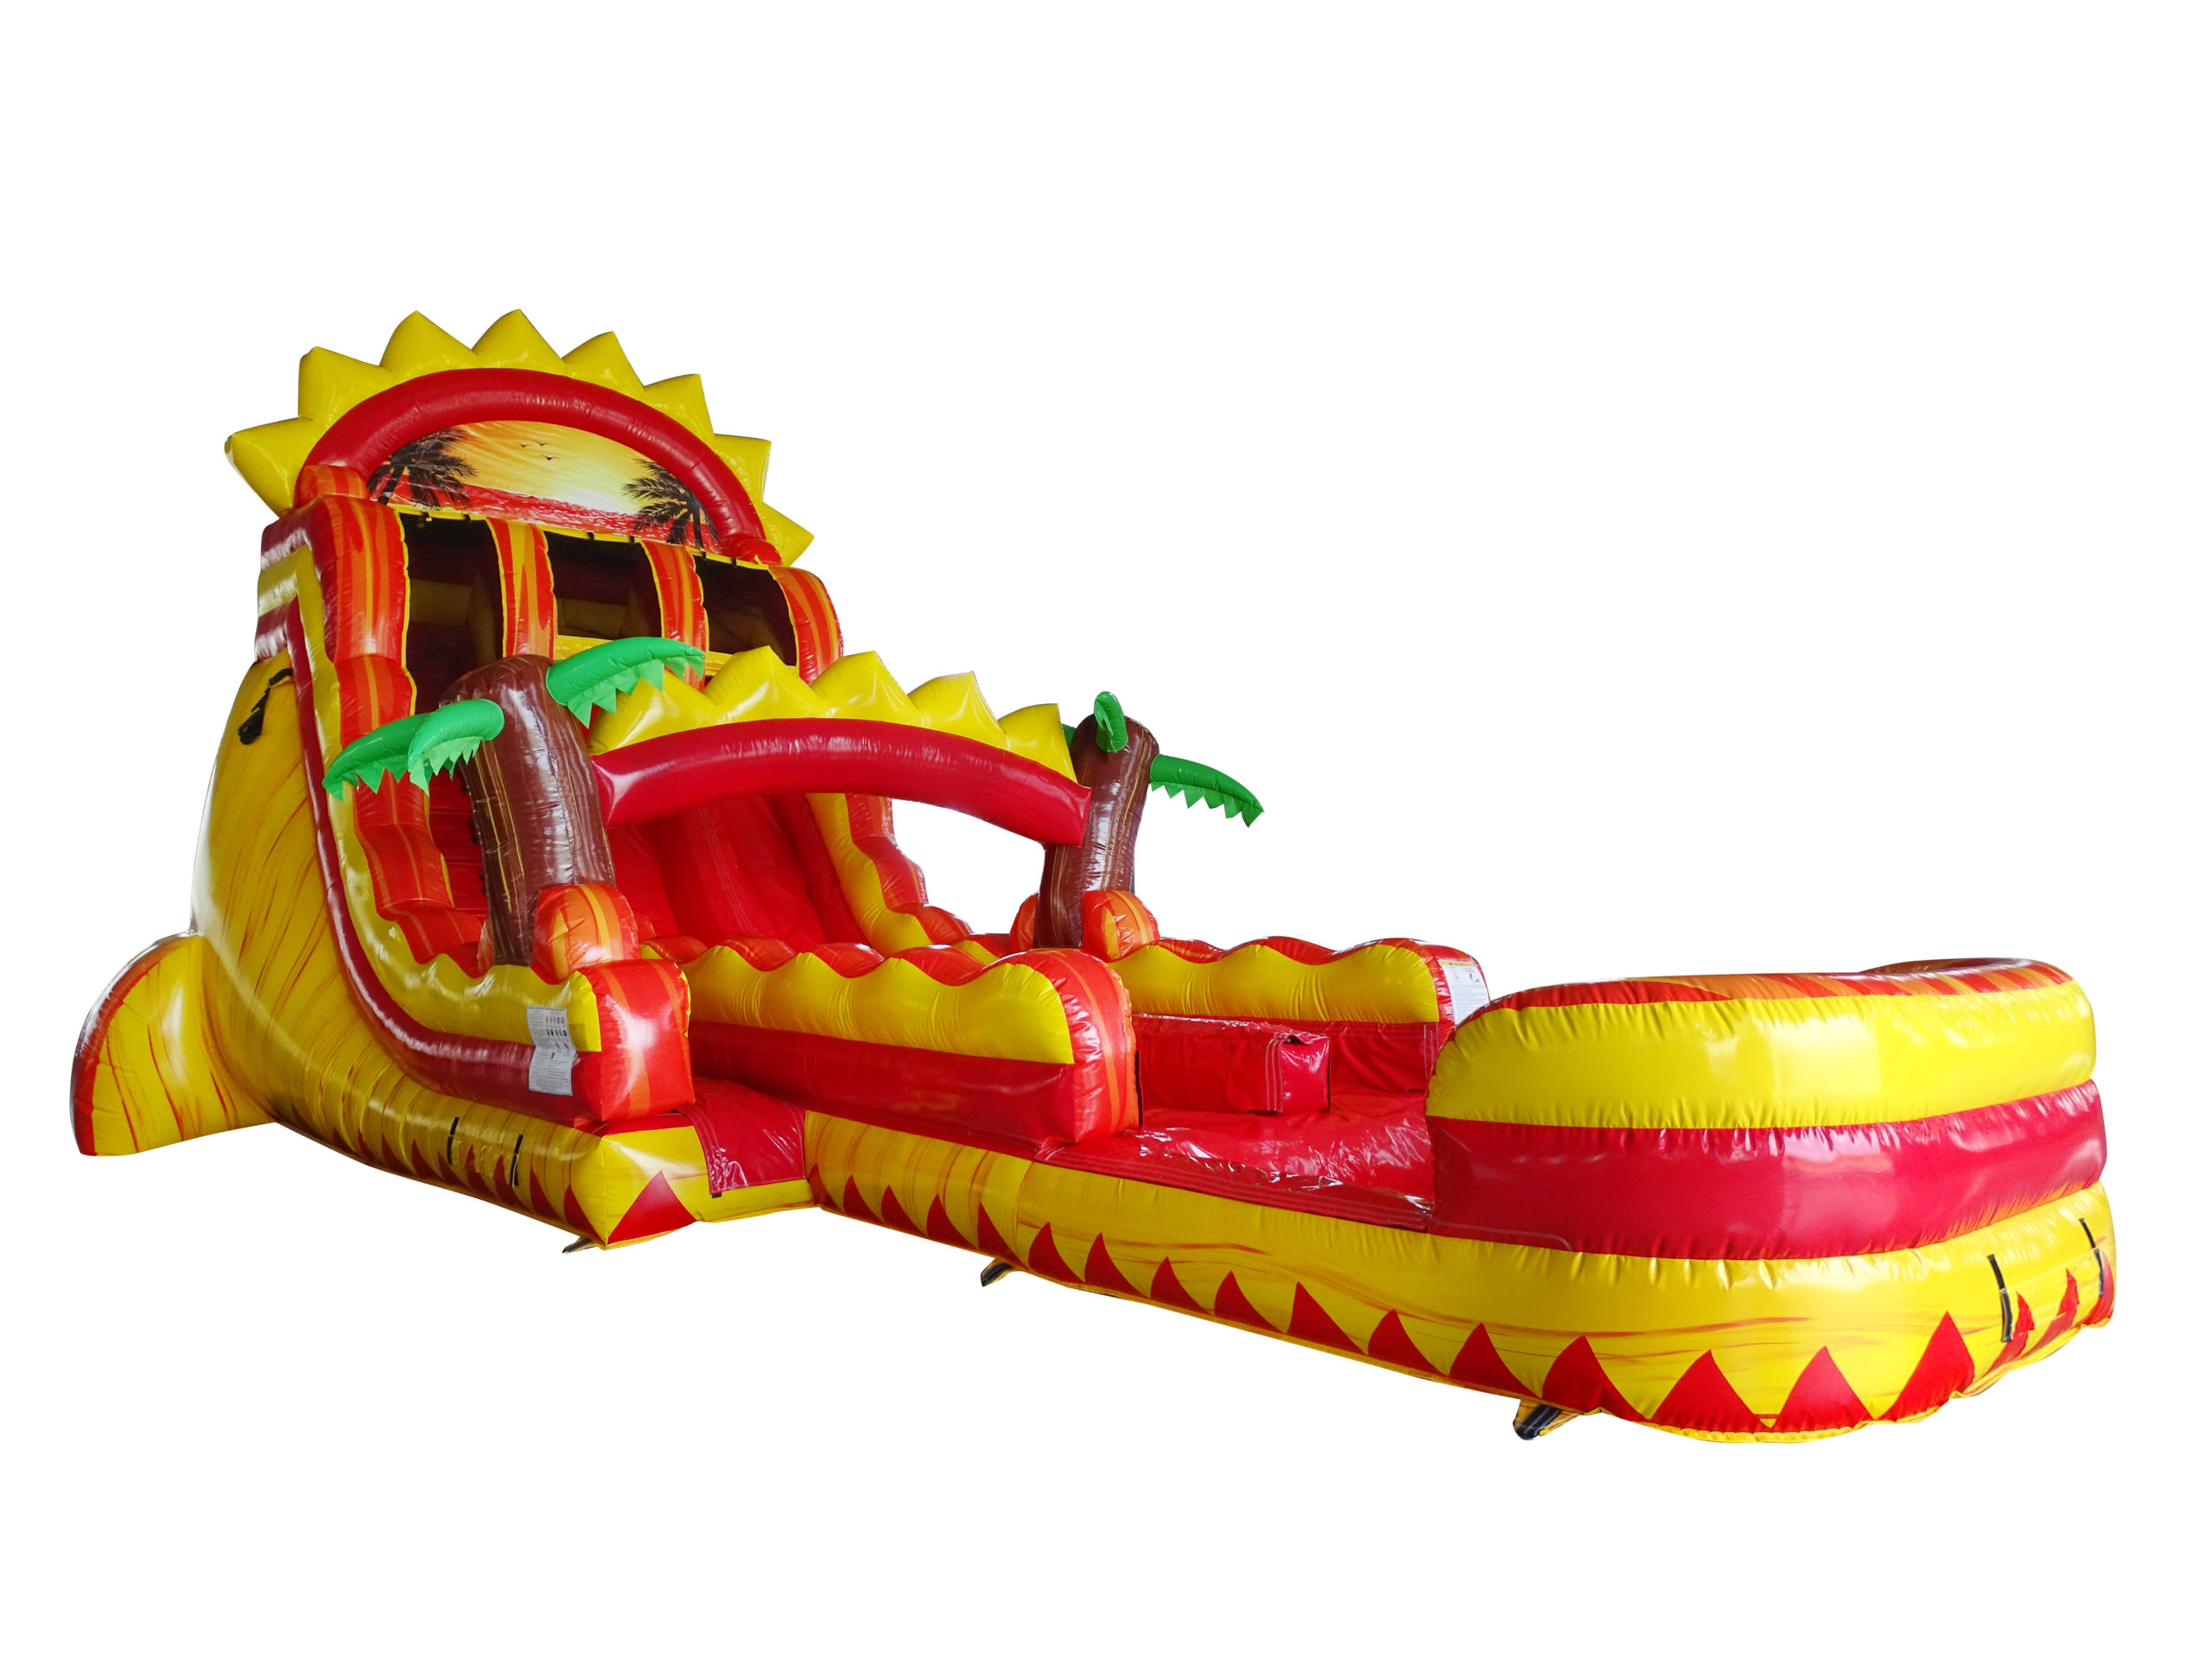 19ft-Summer-Sizzler-1-2-scaled